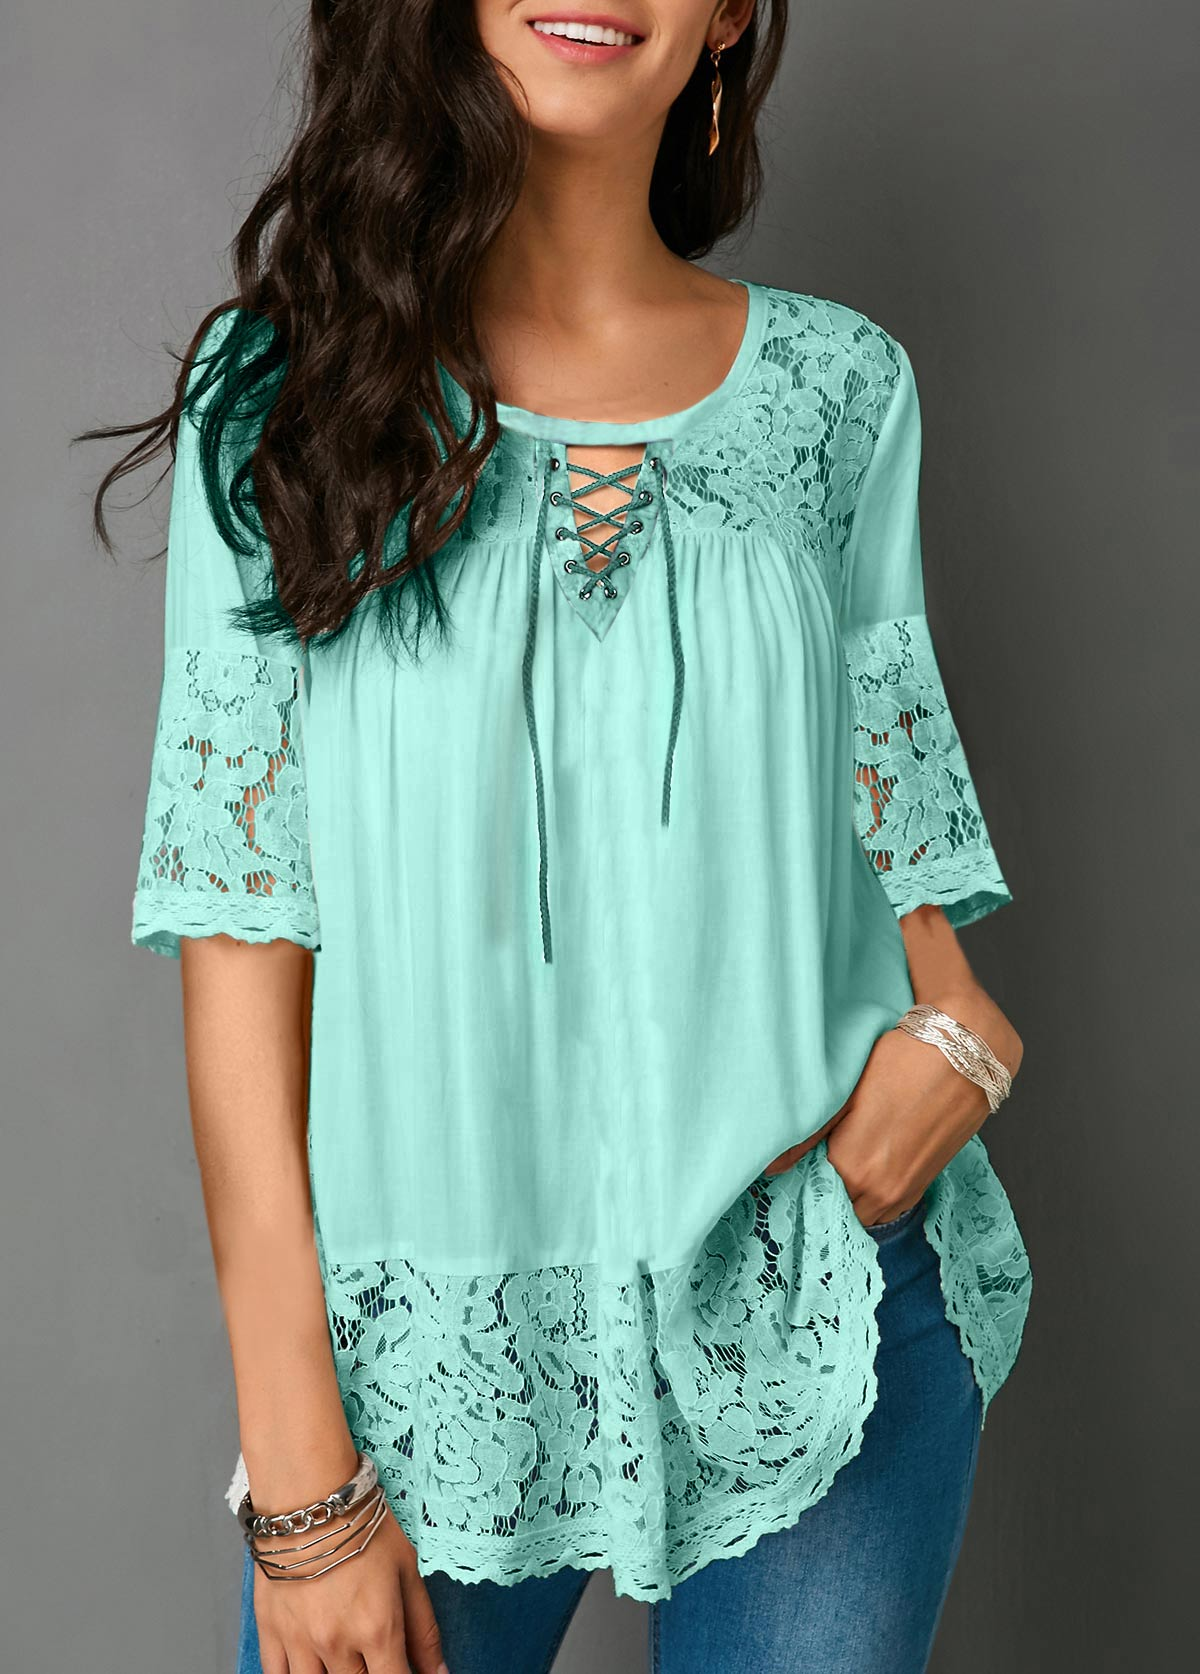 e7f35deef79150 Lace Panel Cutout Front Half Sleeve Blouse | modlily.com - USD $27.26